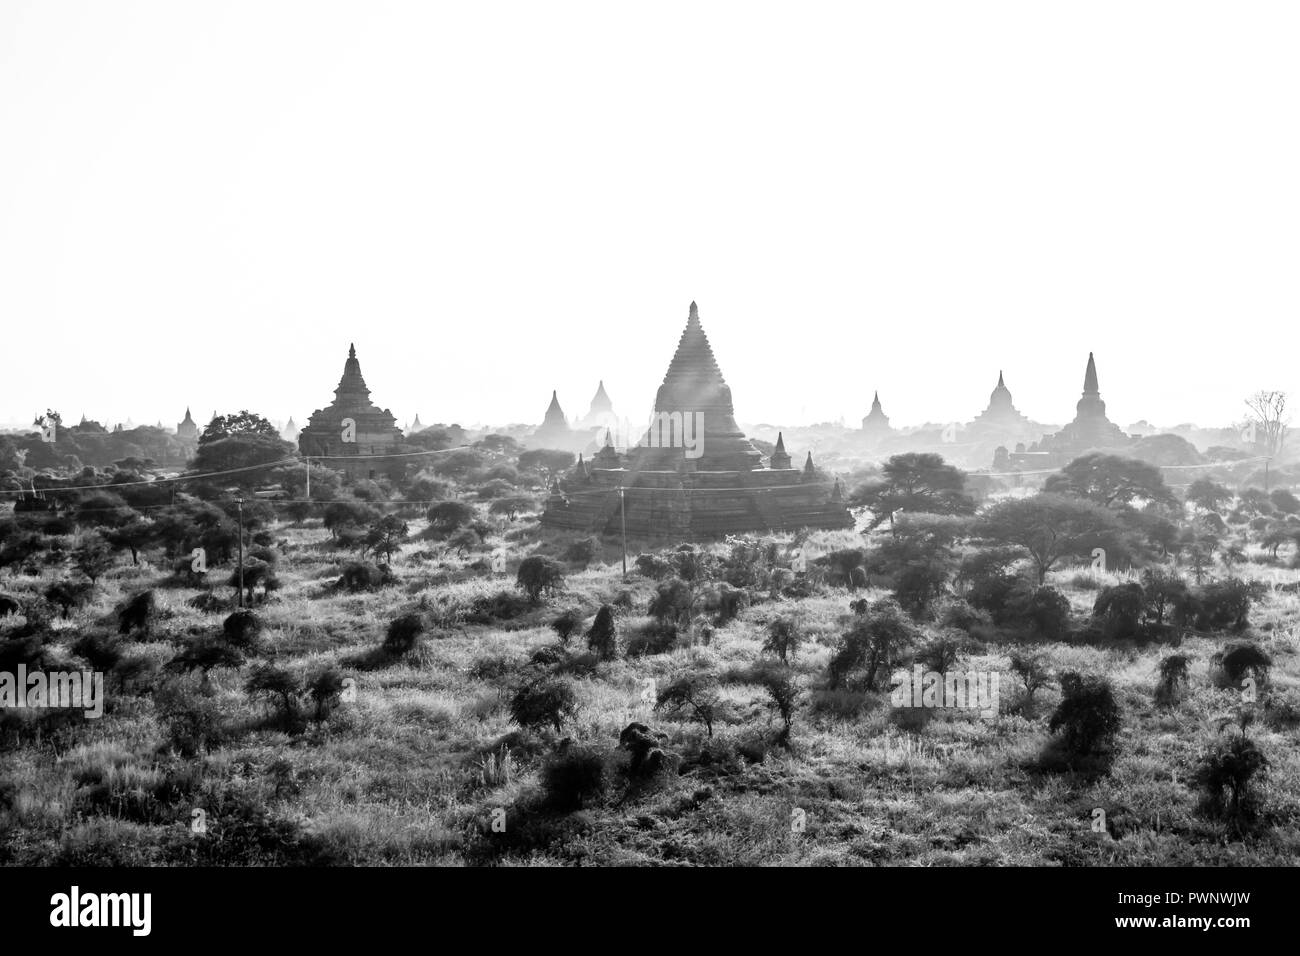 Landscape of Bagan and temples, stupas, Myanmar - Stock Image